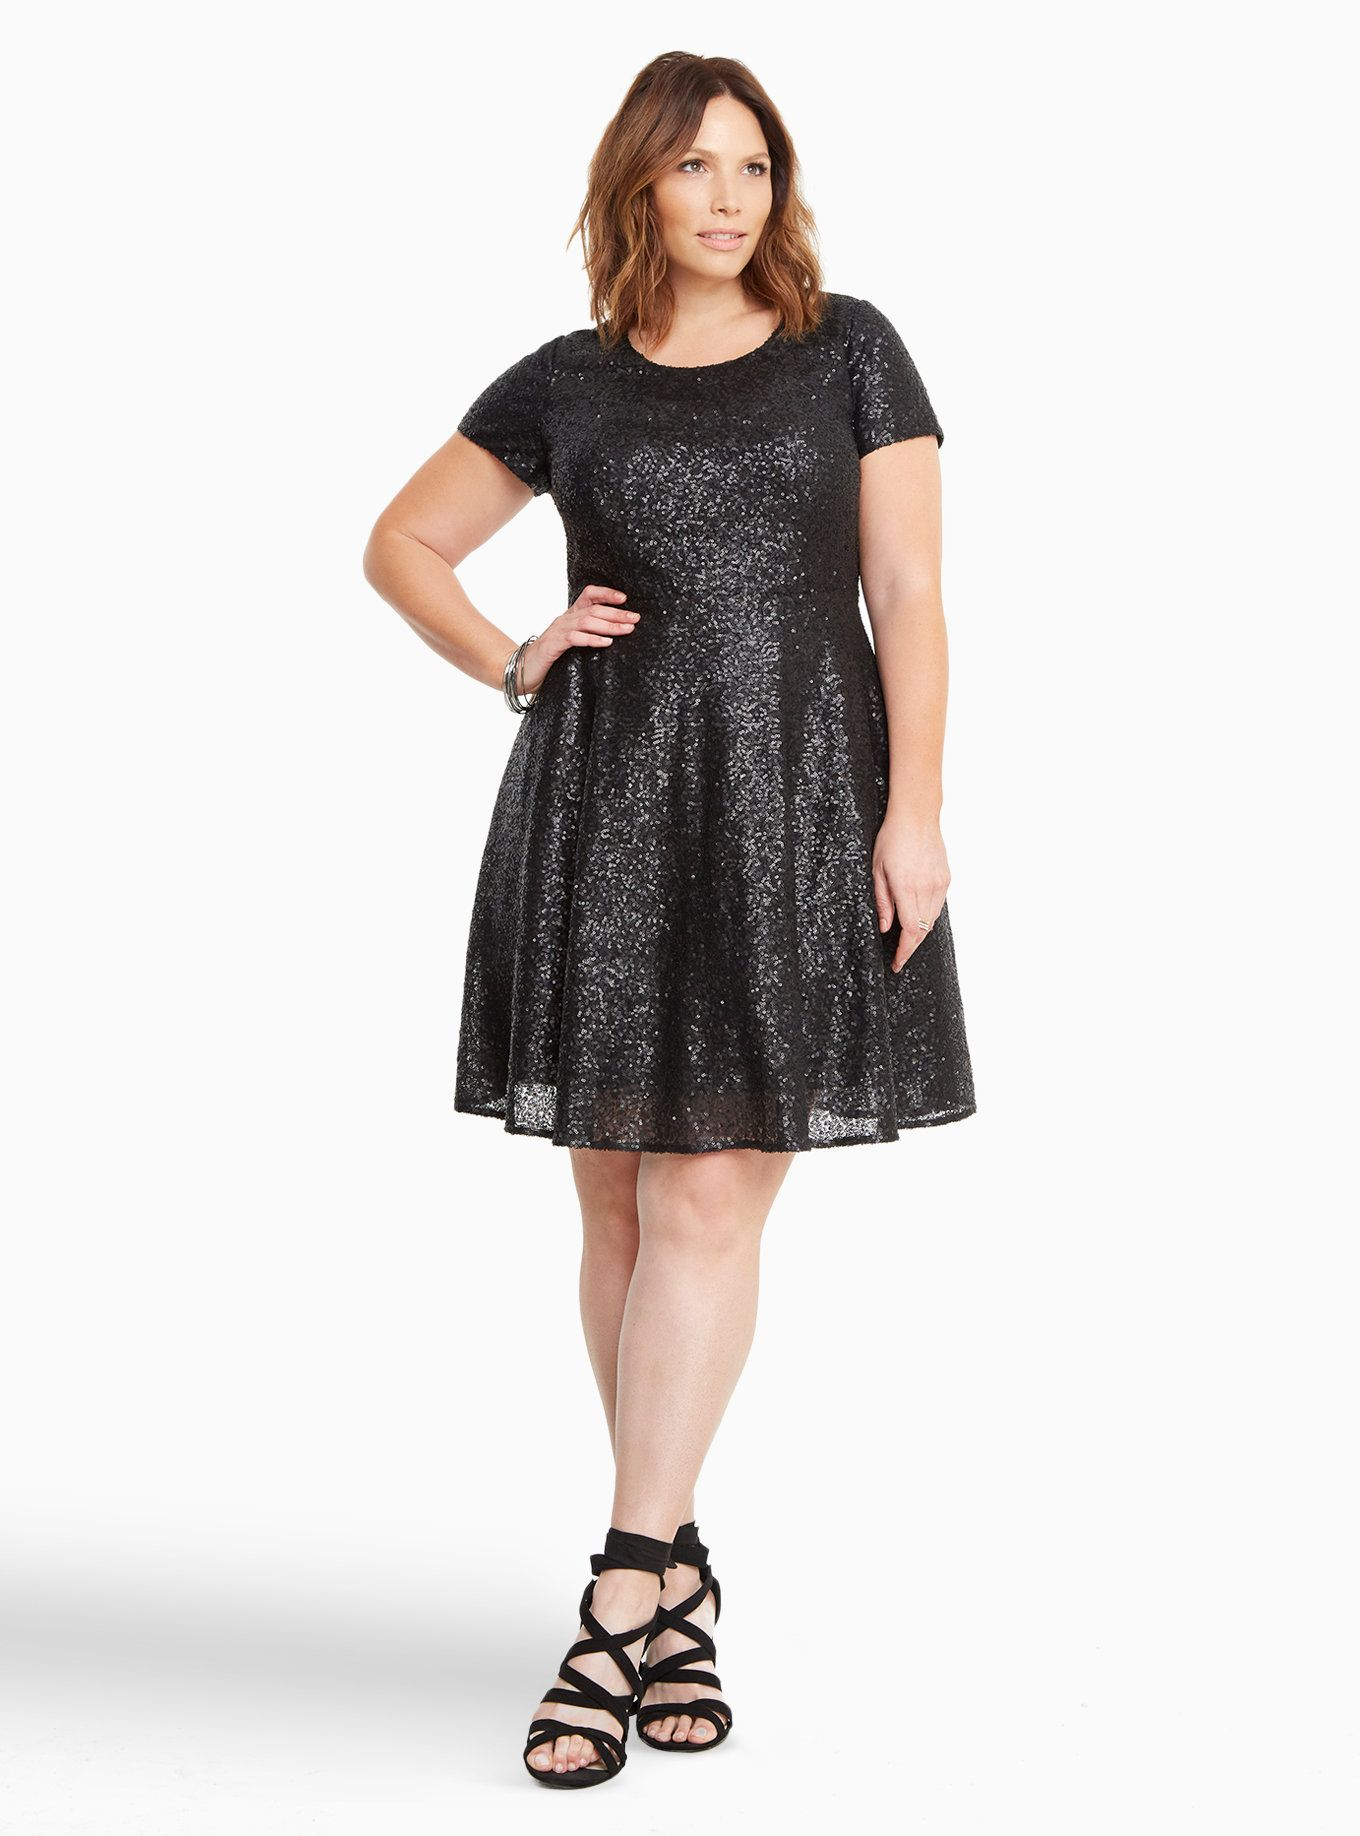 818d509b92c Torrid Sequin Open Back Skater Dress